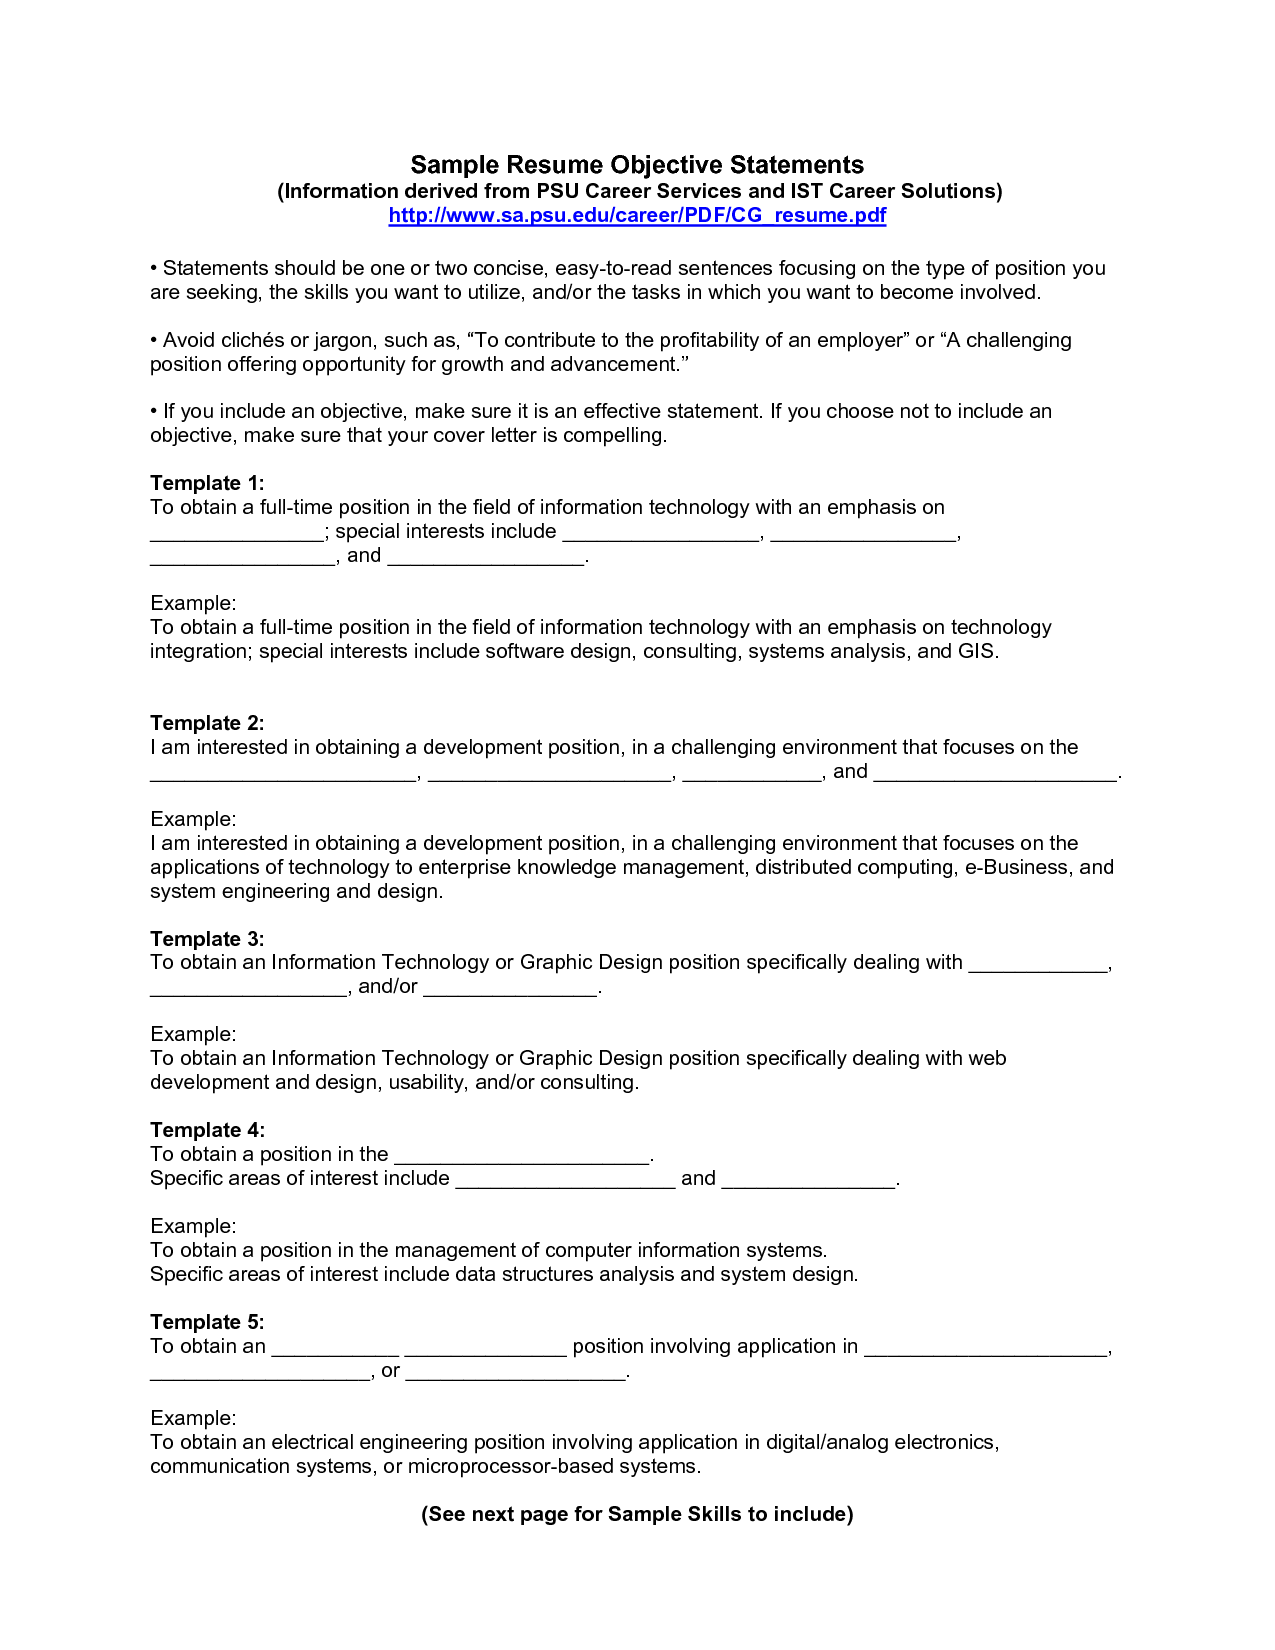 medical assistant job resume sample objective statements - Objective For Resume Medical Assistant